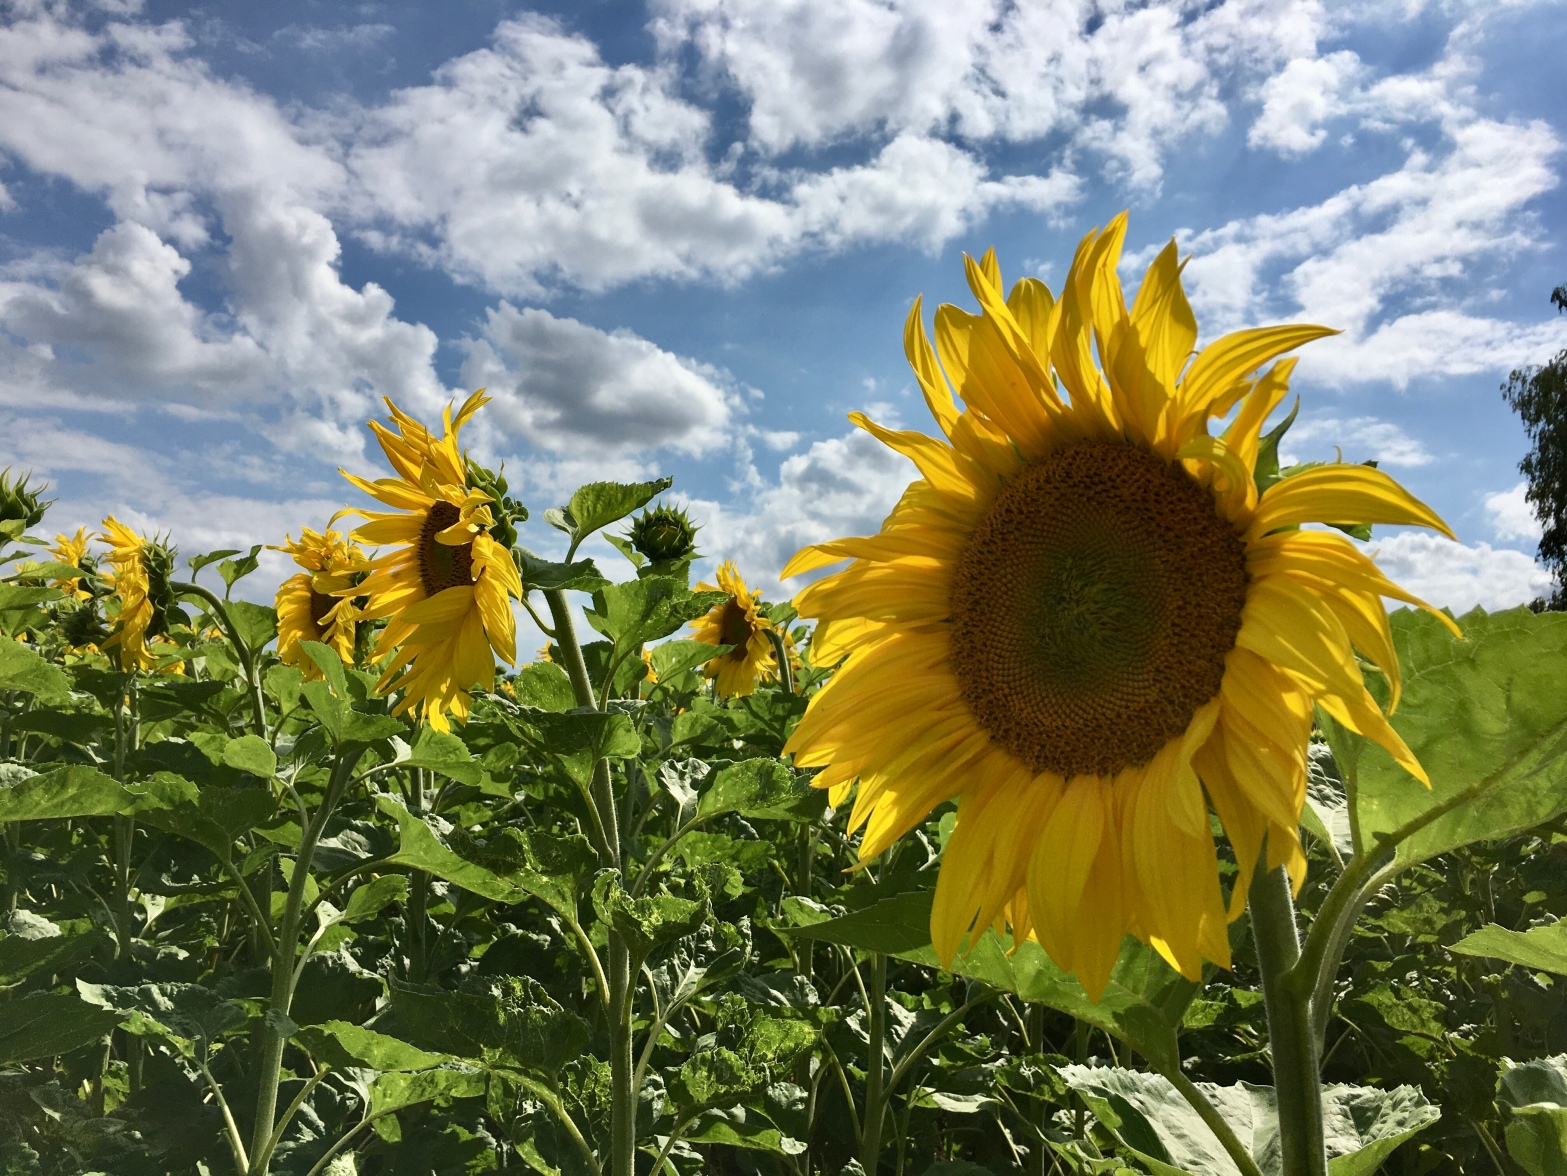 A picture of a large sunflower.